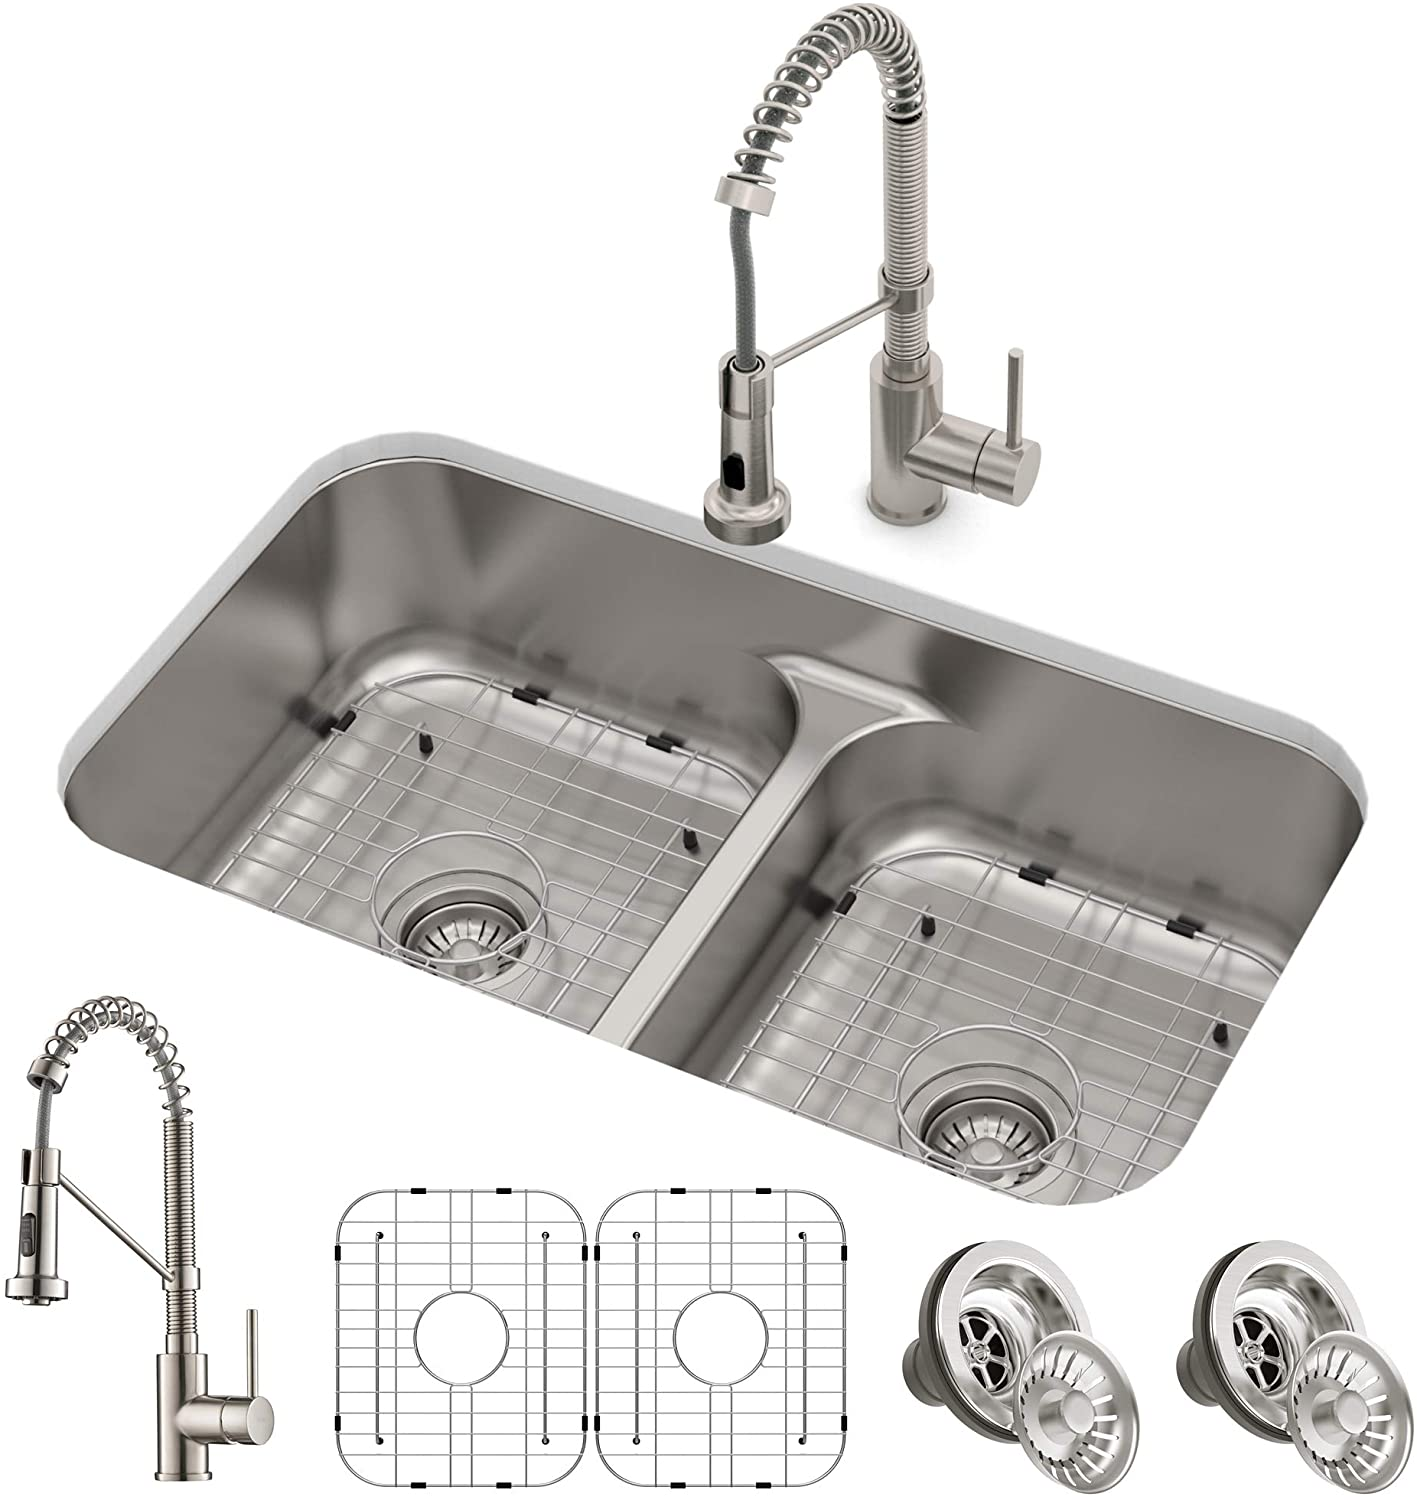 Kraus Kca 1200 Ellis Combo Set With 33 16 Gauge Undermount Sink And Bolden 18 Inch Pull Down Commercial Style Kitchen Faucet Spot Free Stainless Steel Amazon Com